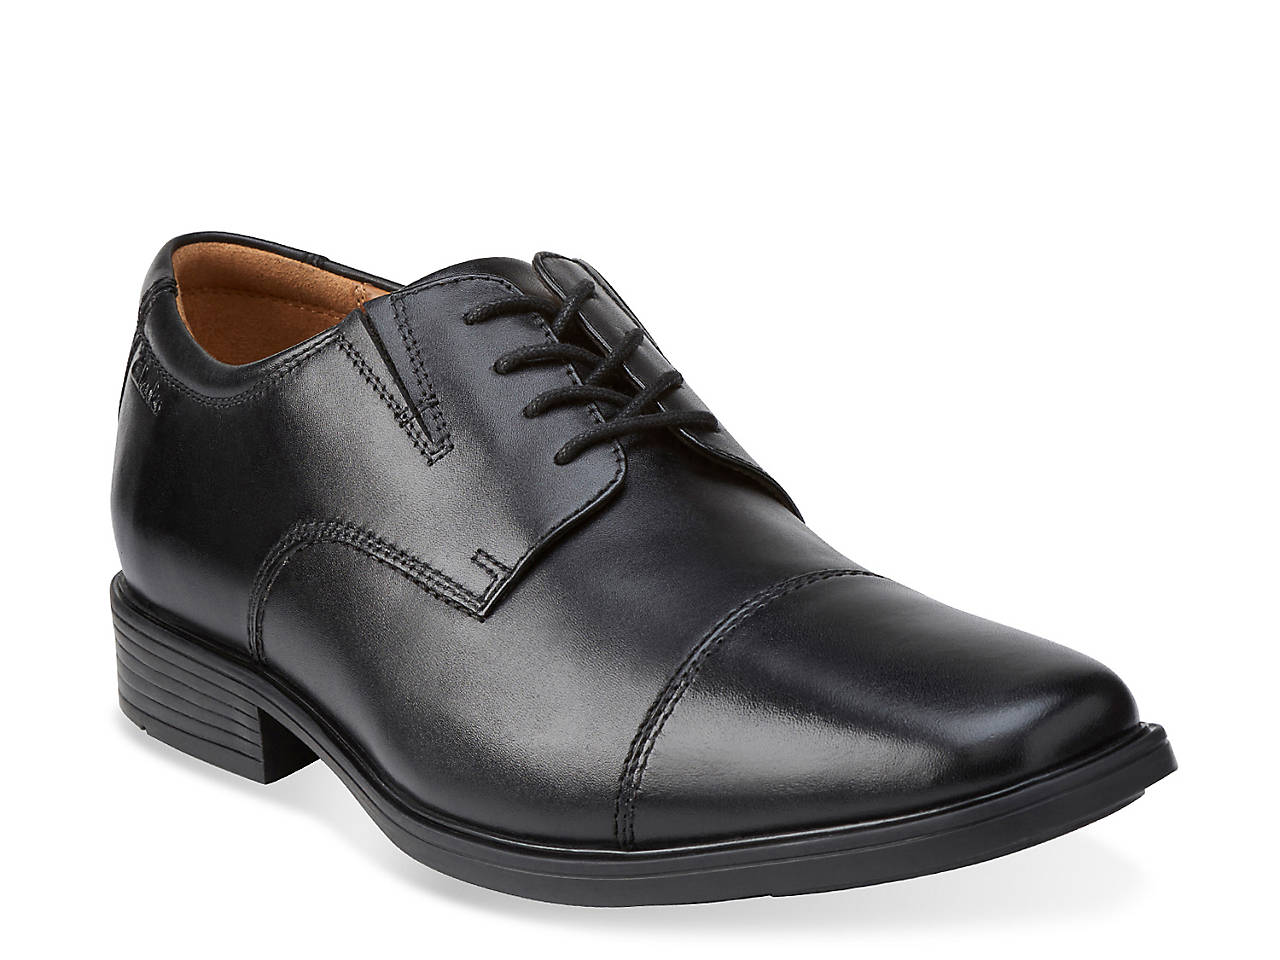 55514a524d1 Tilden Cap Toe Oxford